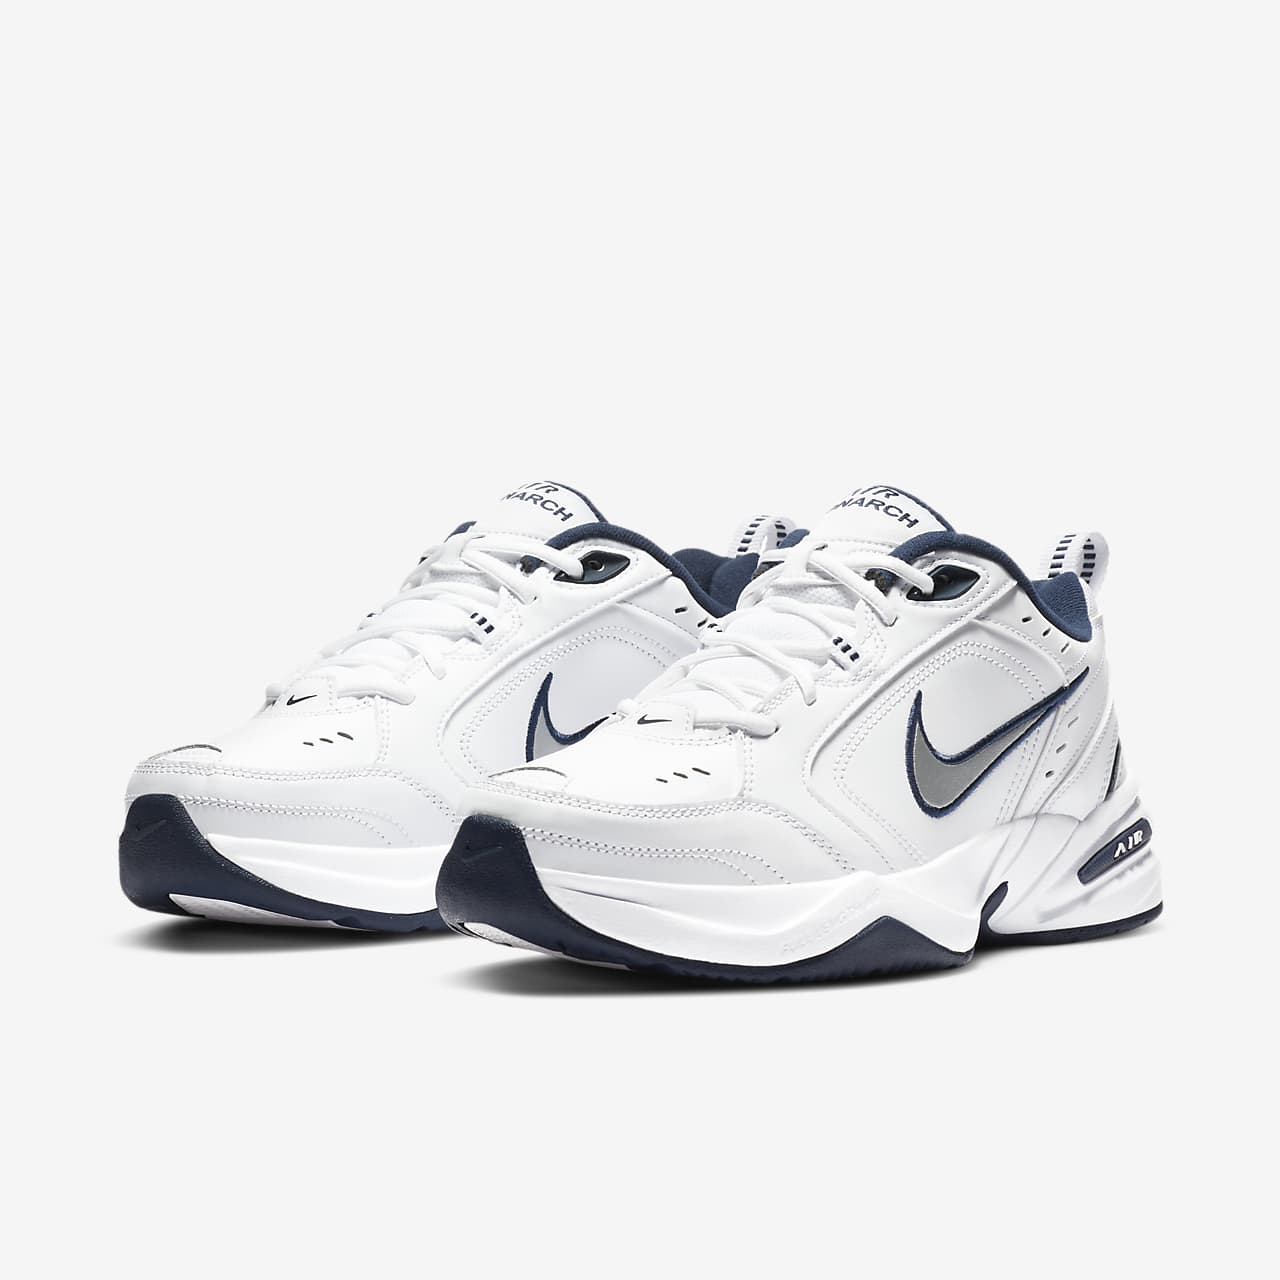 457fcbb6213ba Nike Air Monarch IV Lifestyle/Gym Shoe. Nike.com ZA